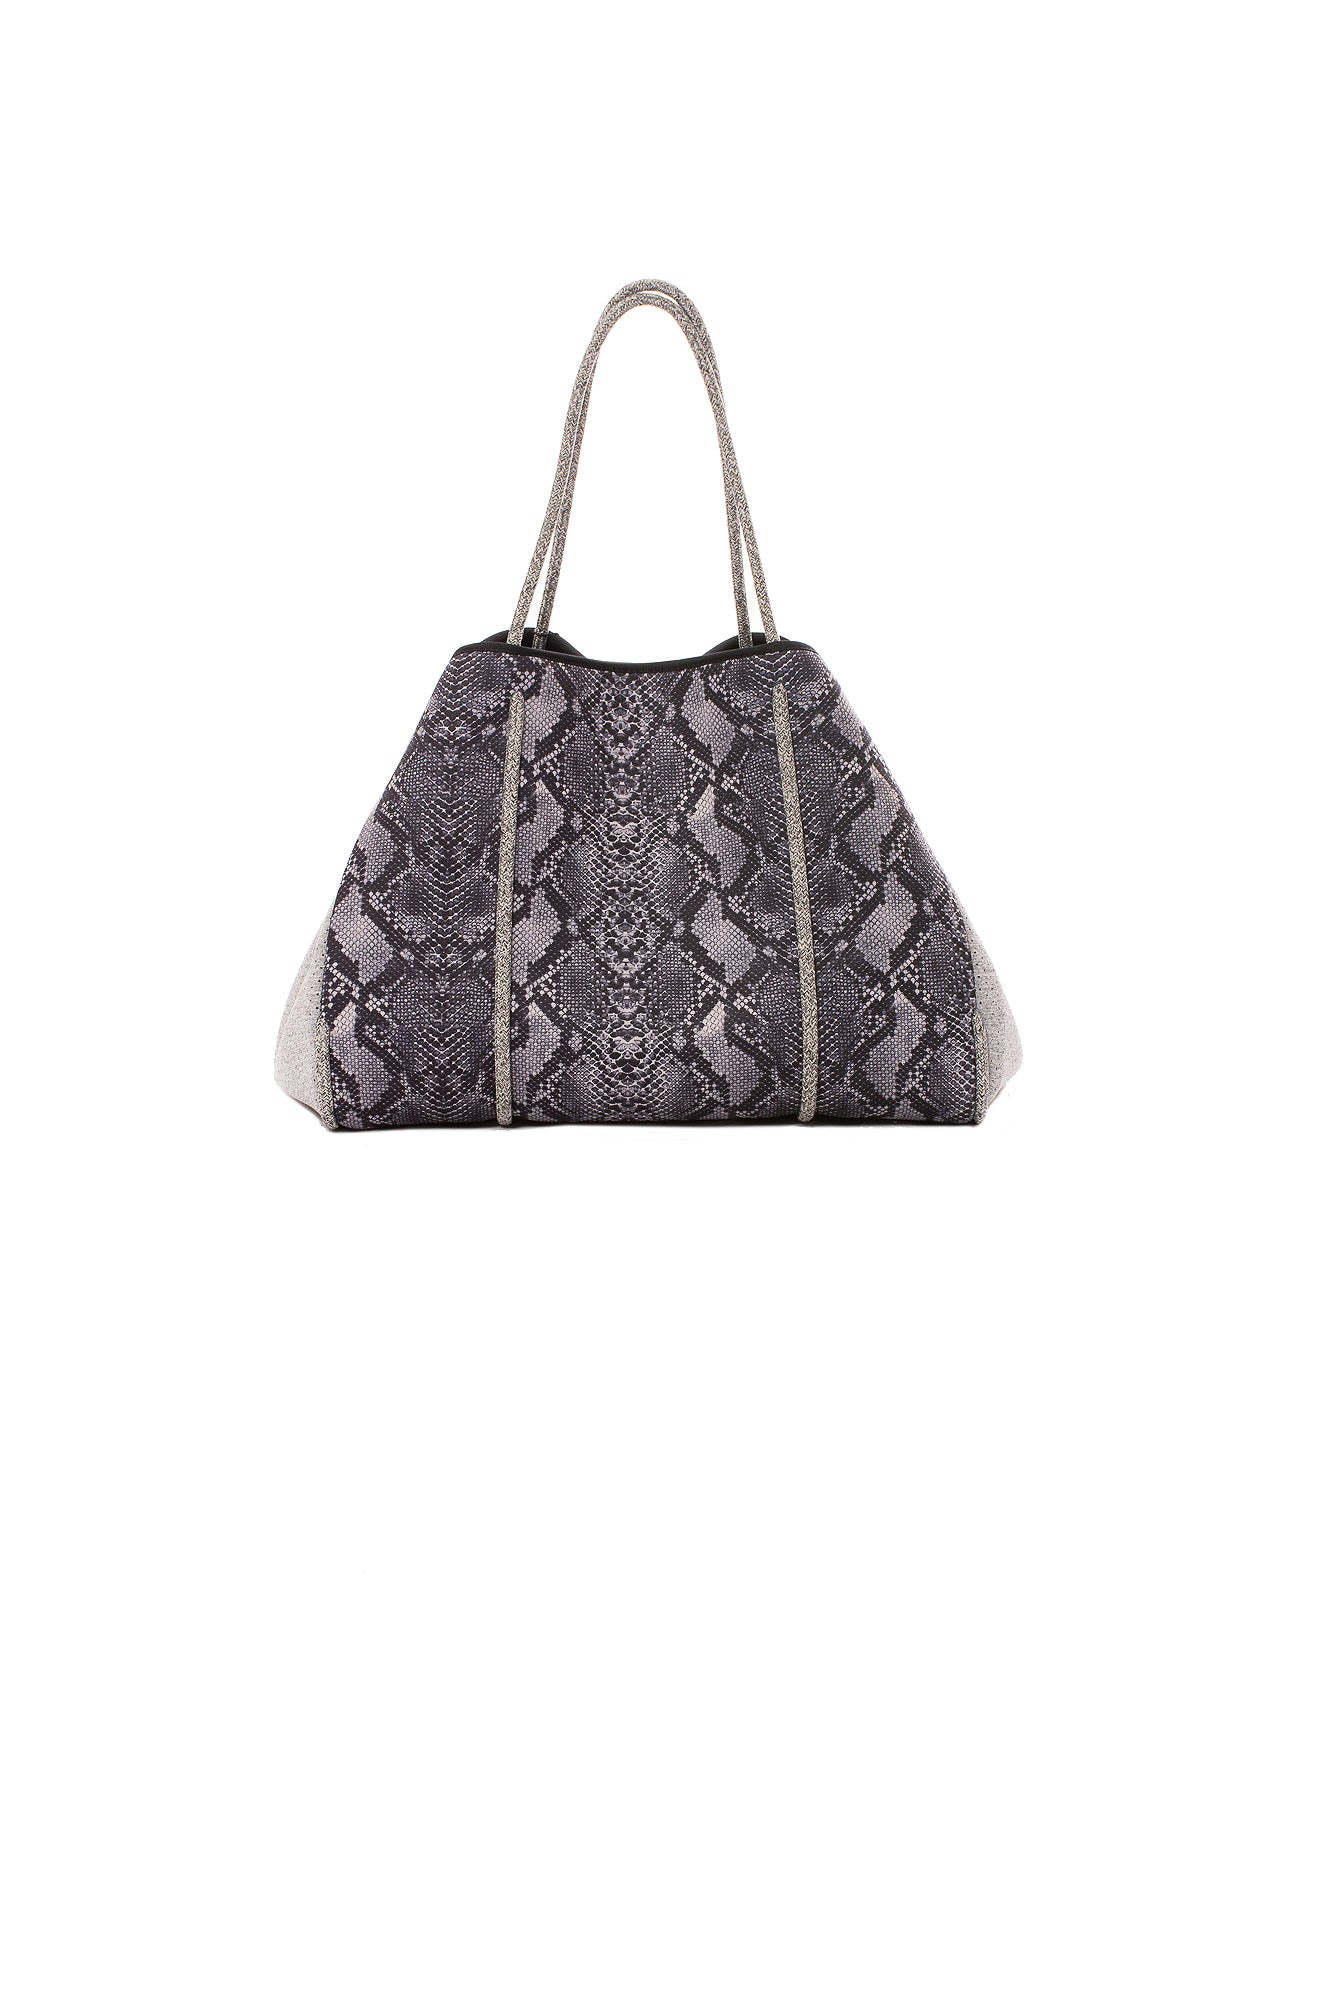 Haute Shore - Greyson Rebel Neoprene Tote Bag w/Zipper Wristlet Inside (Rebel, Gray Python w/Heather Marle Sides)